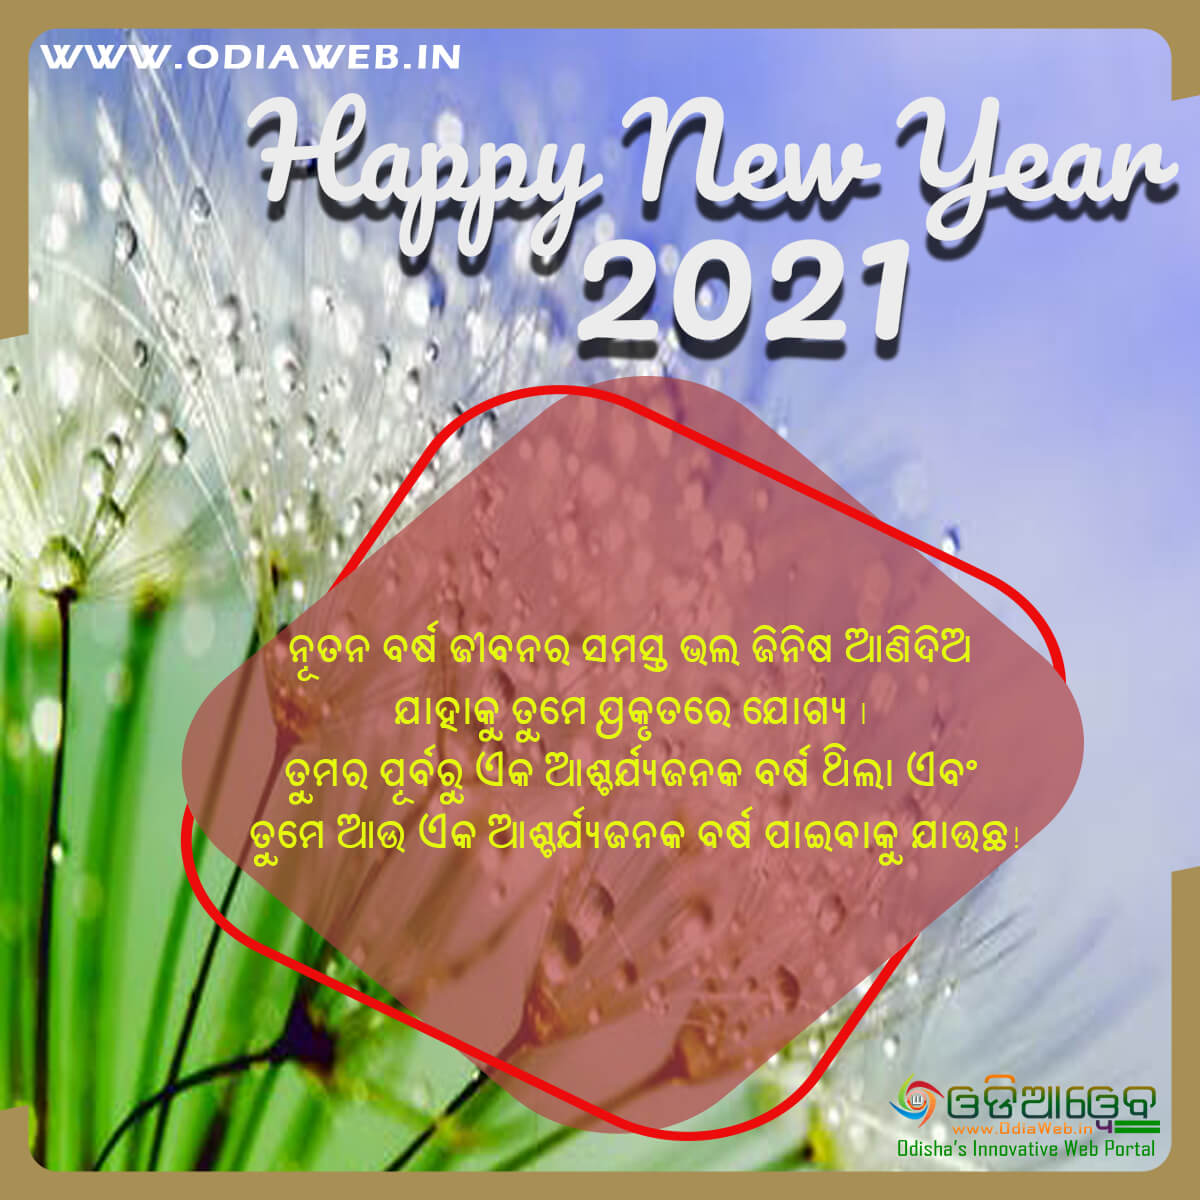 Happy New Year 2021 Wishes Odia (10)